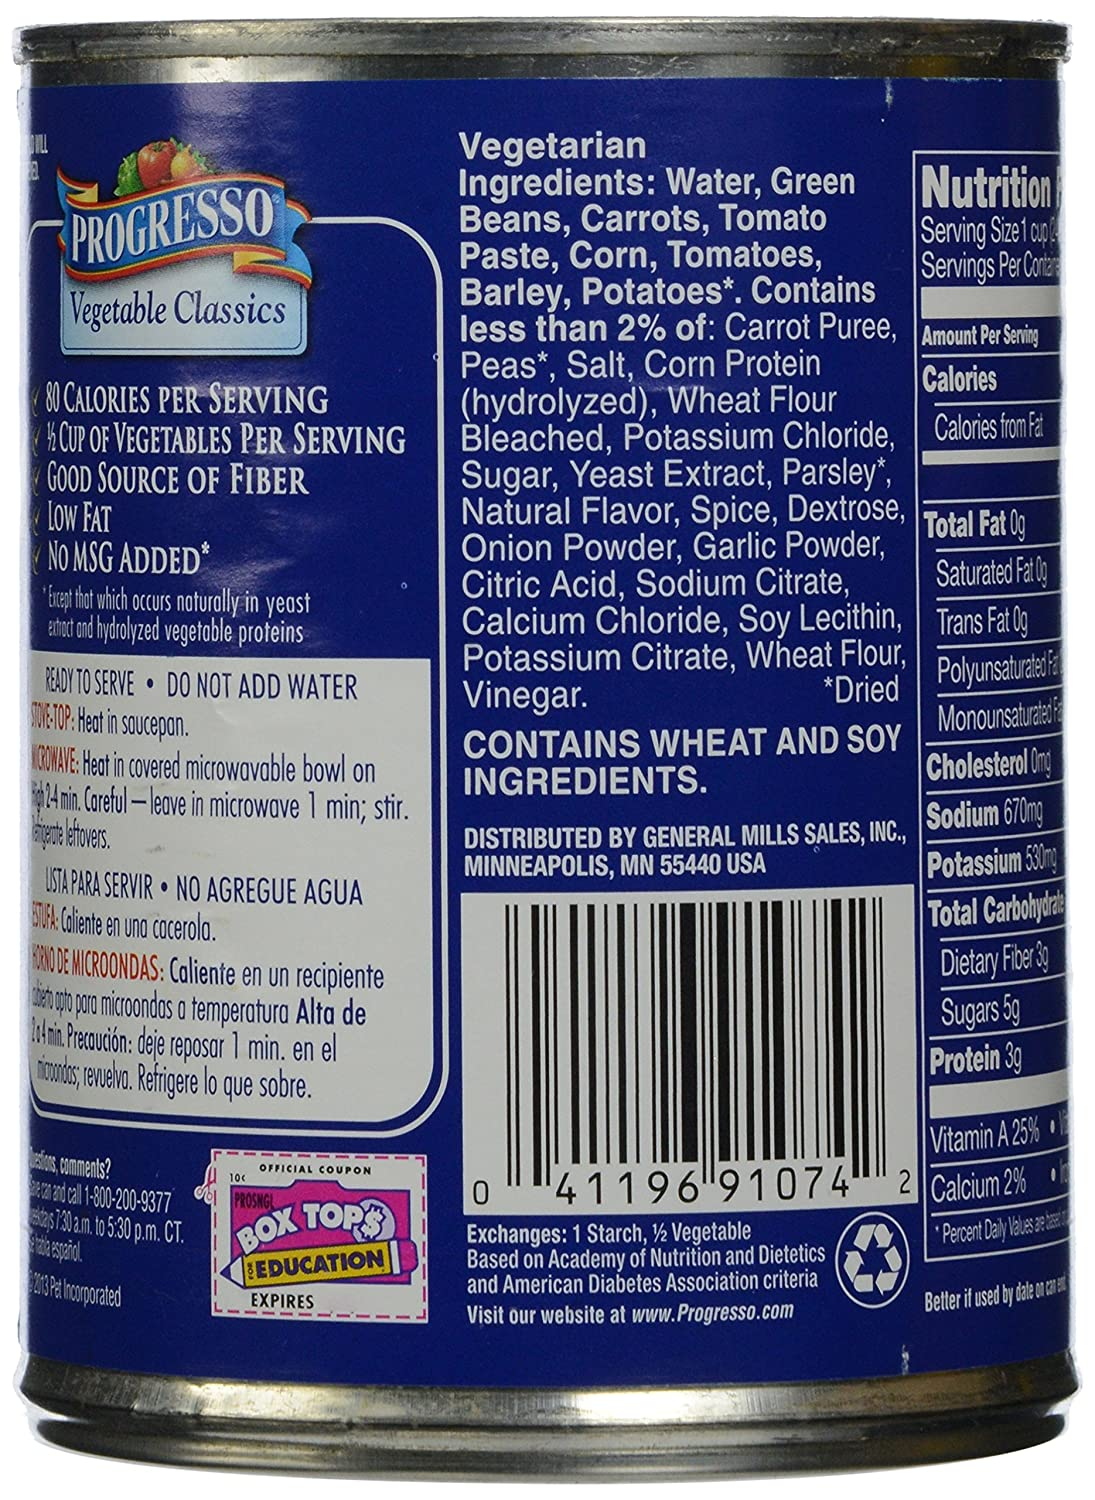 Amazon.com : Progresso Vegetable Classics Vegetarian Vegetable with Barley Soup 19 oz. Can : Grocery & Gourmet Food